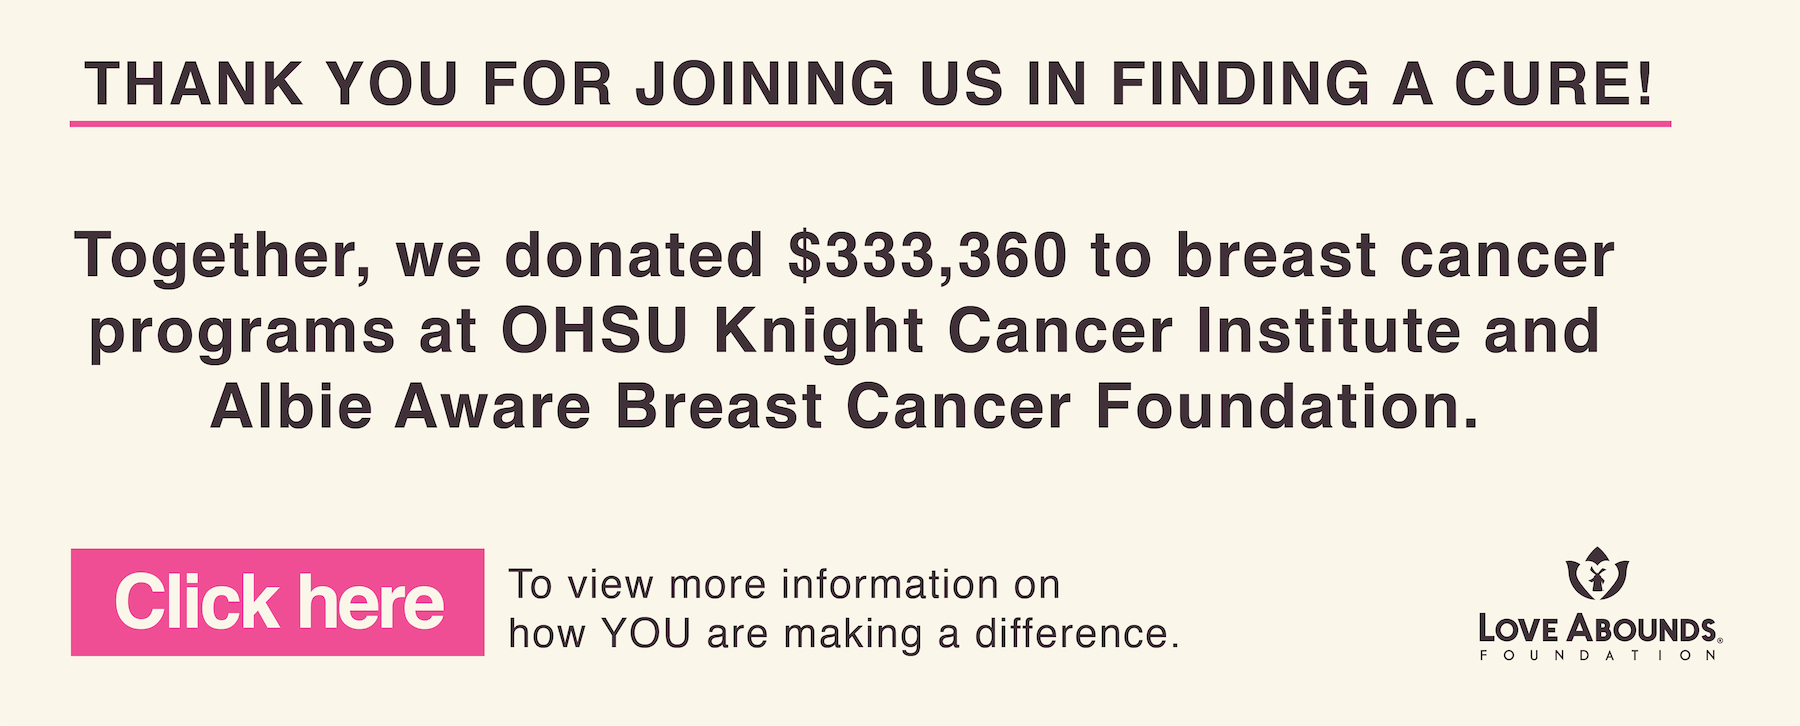 Thank you for joining us in finding a cure! Together, we donated $333,360 to breast cancer programs at OHSU Knight Cancer Institute and Albie Aware Breast Cancer Foundation. Click here to view more information on how you are making a difference.